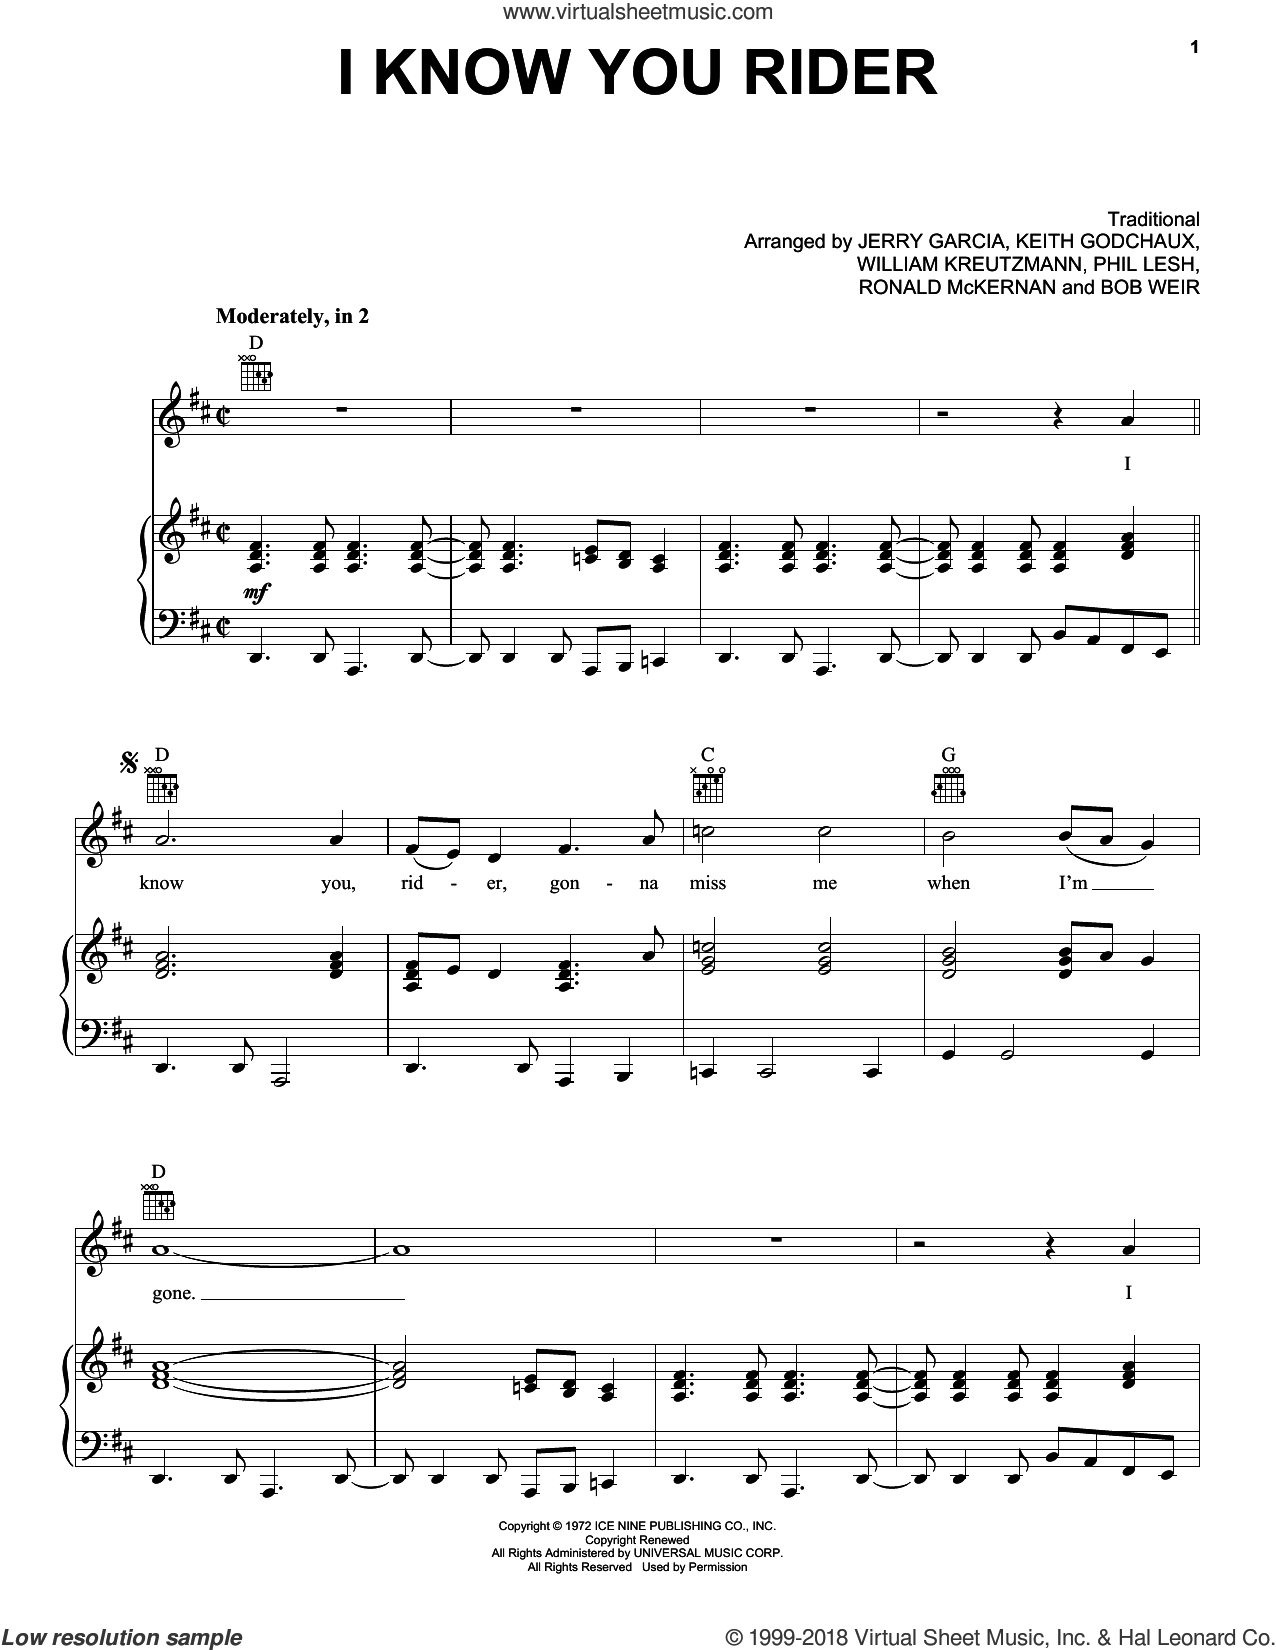 I Know You Rider sheet music for voice, piano or guitar by William Kreutzmann, Grateful Dead and Miscellaneous. Score Image Preview.